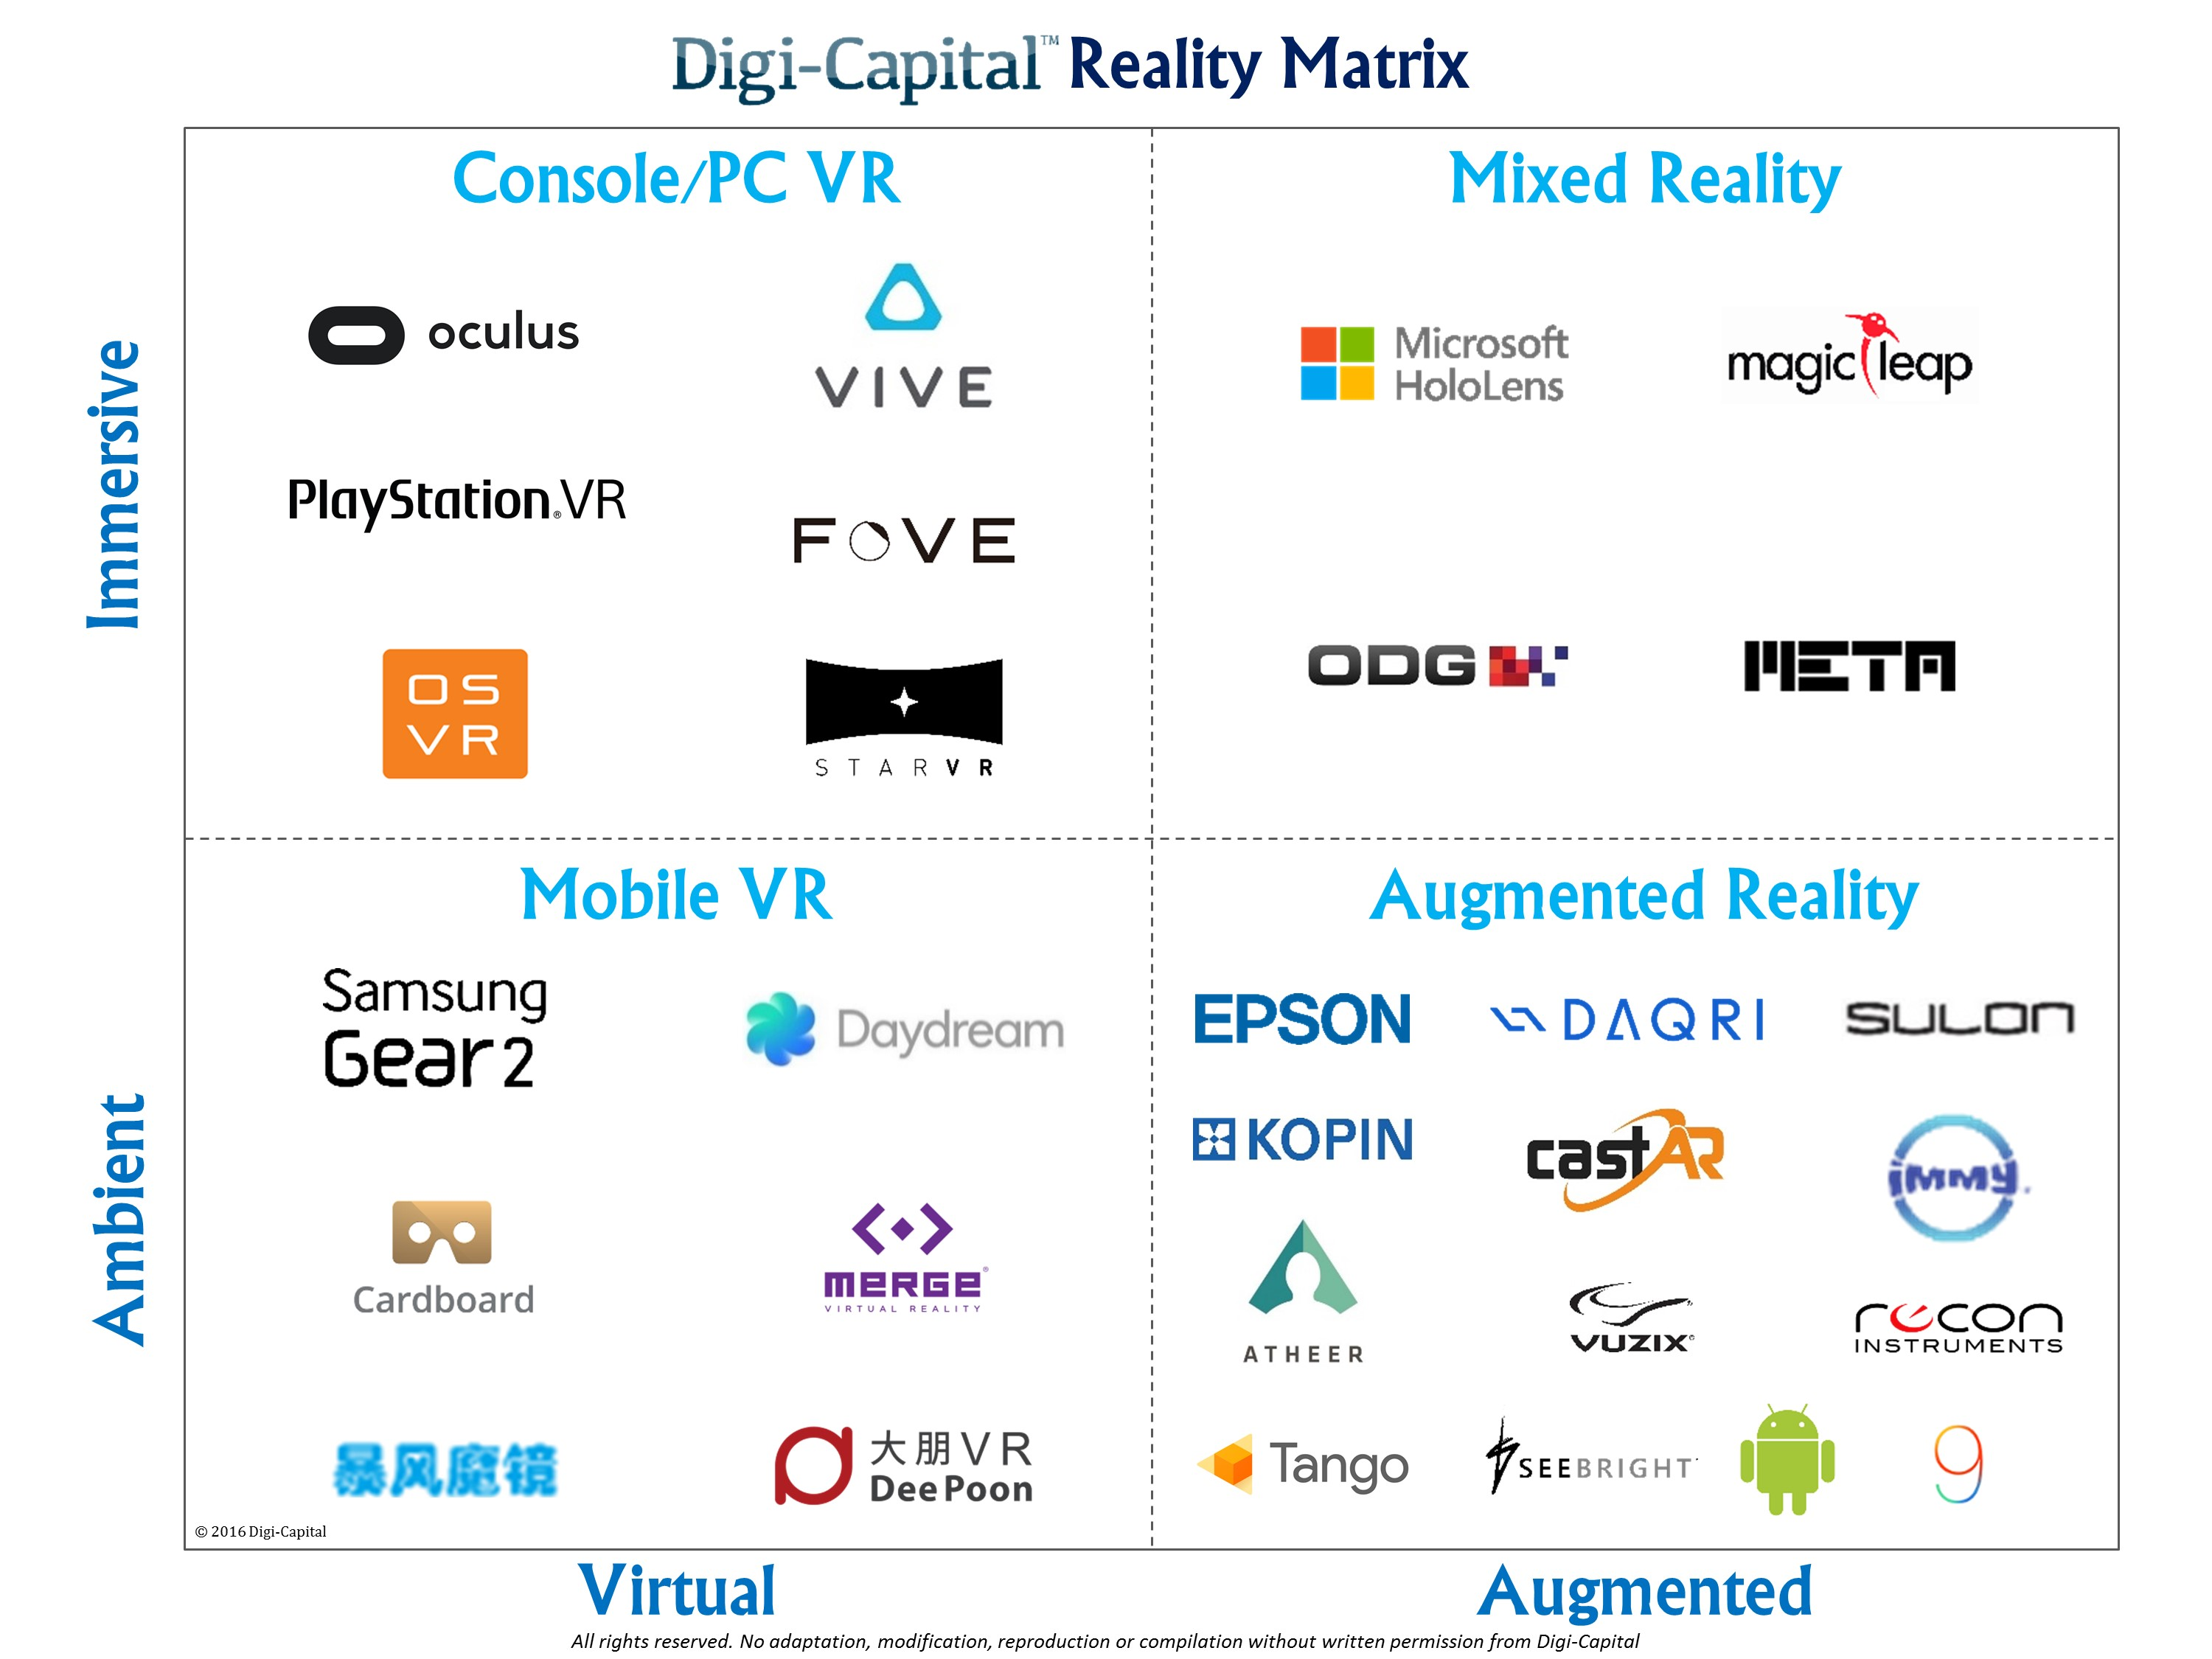 Digi-Capital Reality Matrix